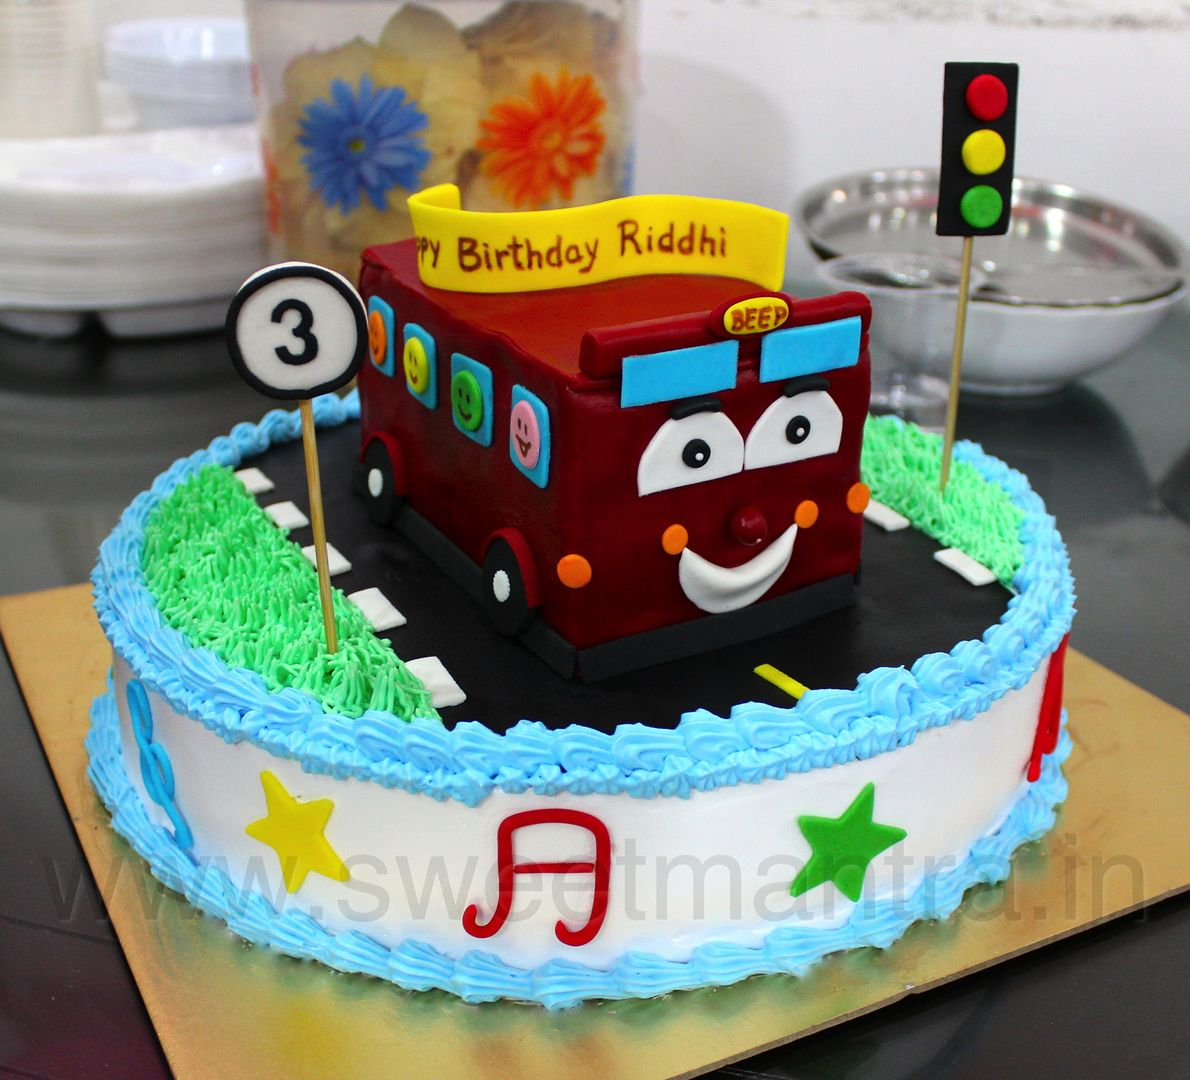 Homemade Eggless 3D Custom Wheels On The Bus Theme 3rd Birthday Cake For Girl At Baner Pune